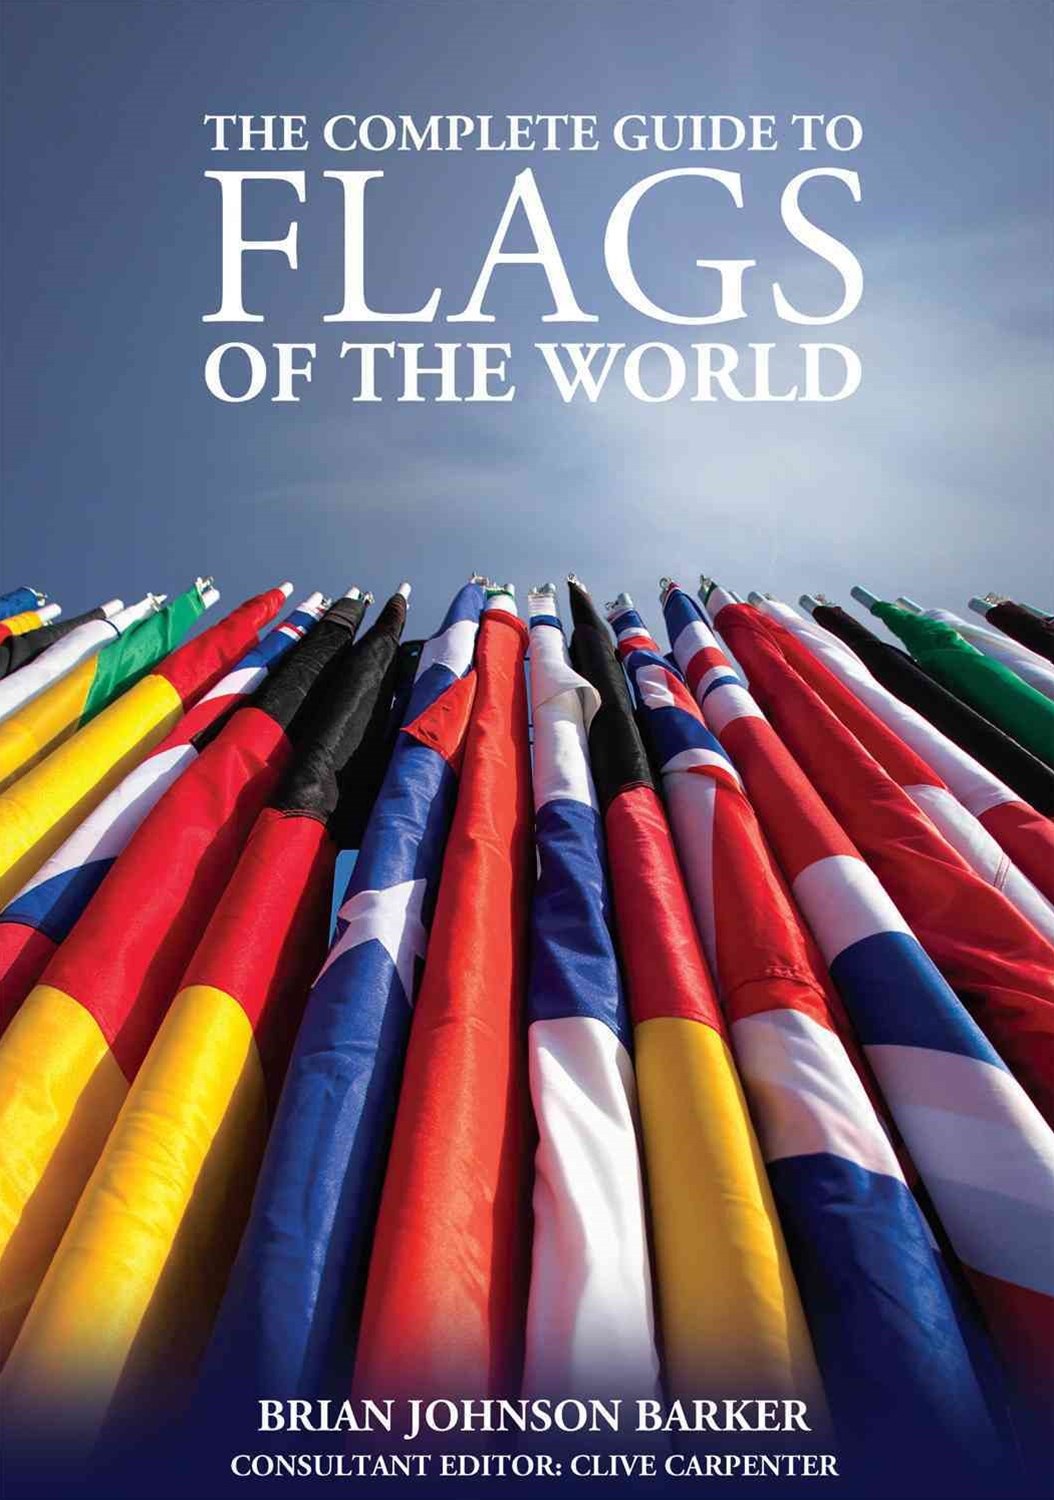 The Complete Guide to Flags of the World, 3rd Edn